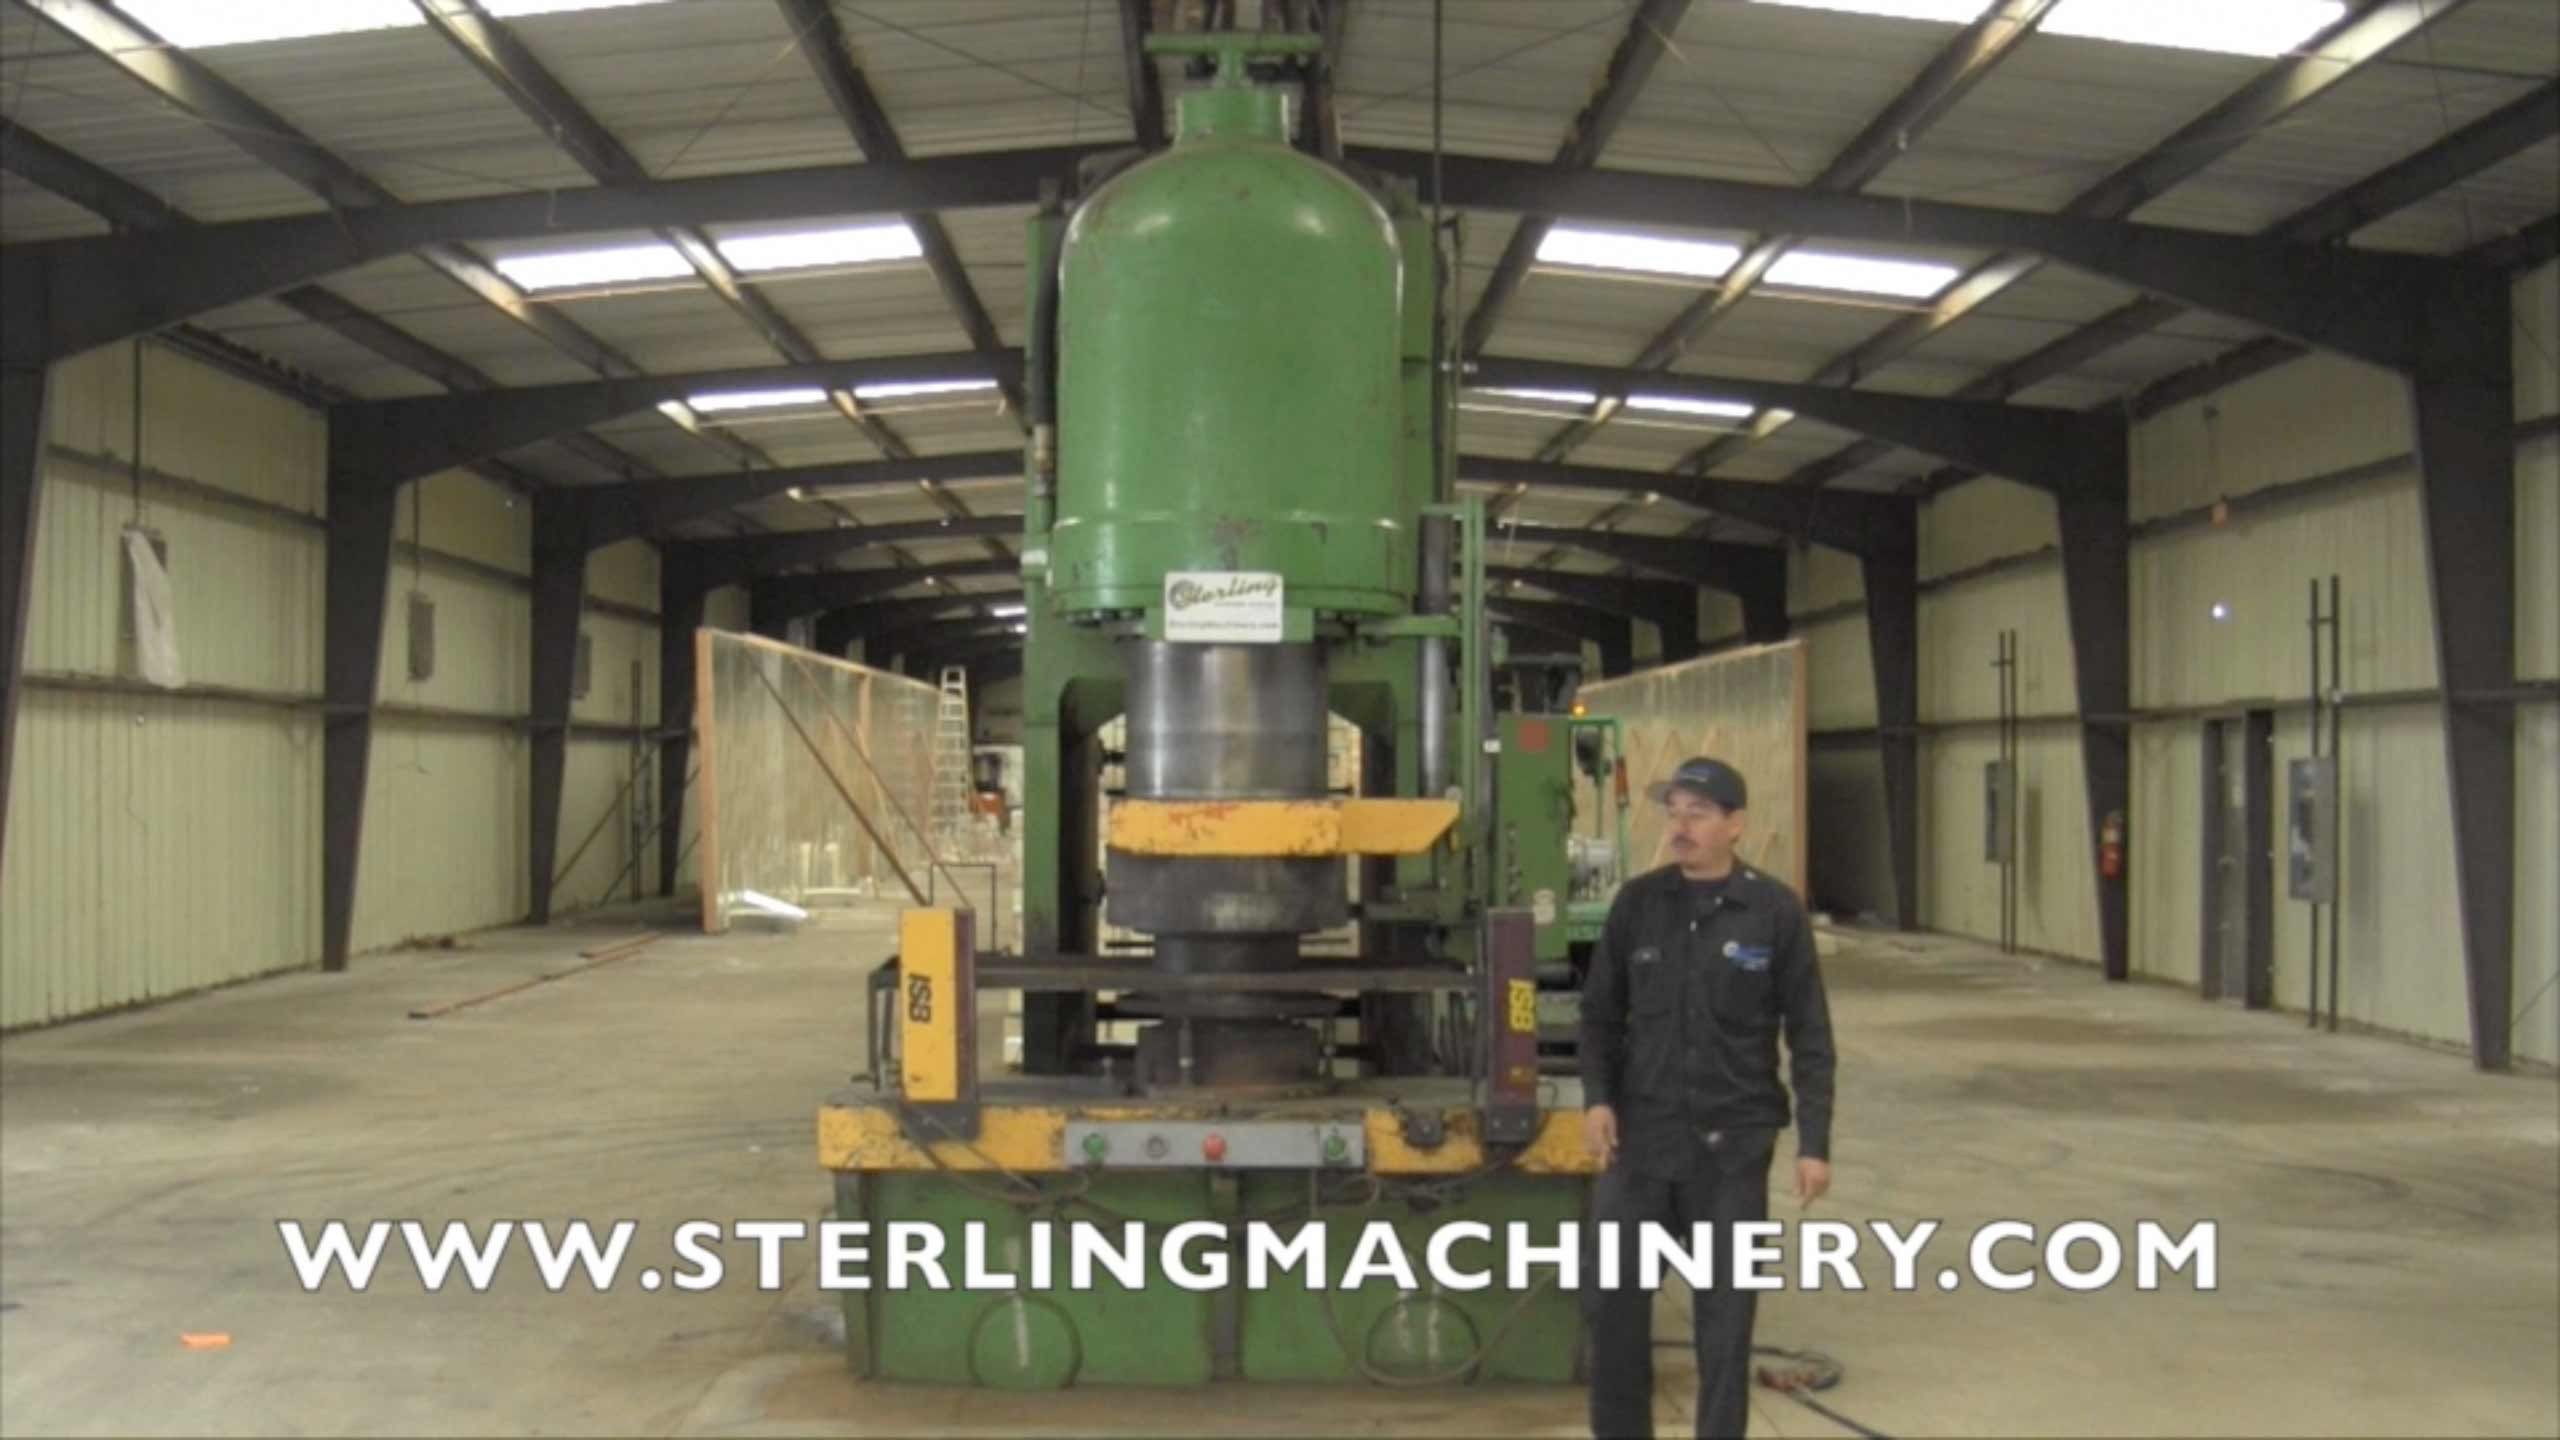 Machinery Videos Of Dealer Machine Tools Showing Used Lathe Milling M60 Mcb Circuit Breaker Mini China 750 Ton X 18 Del Pacfico Hidrulico Pressformer Press Control Dual De Palm Barreras Seguridad A4336 2097 Views